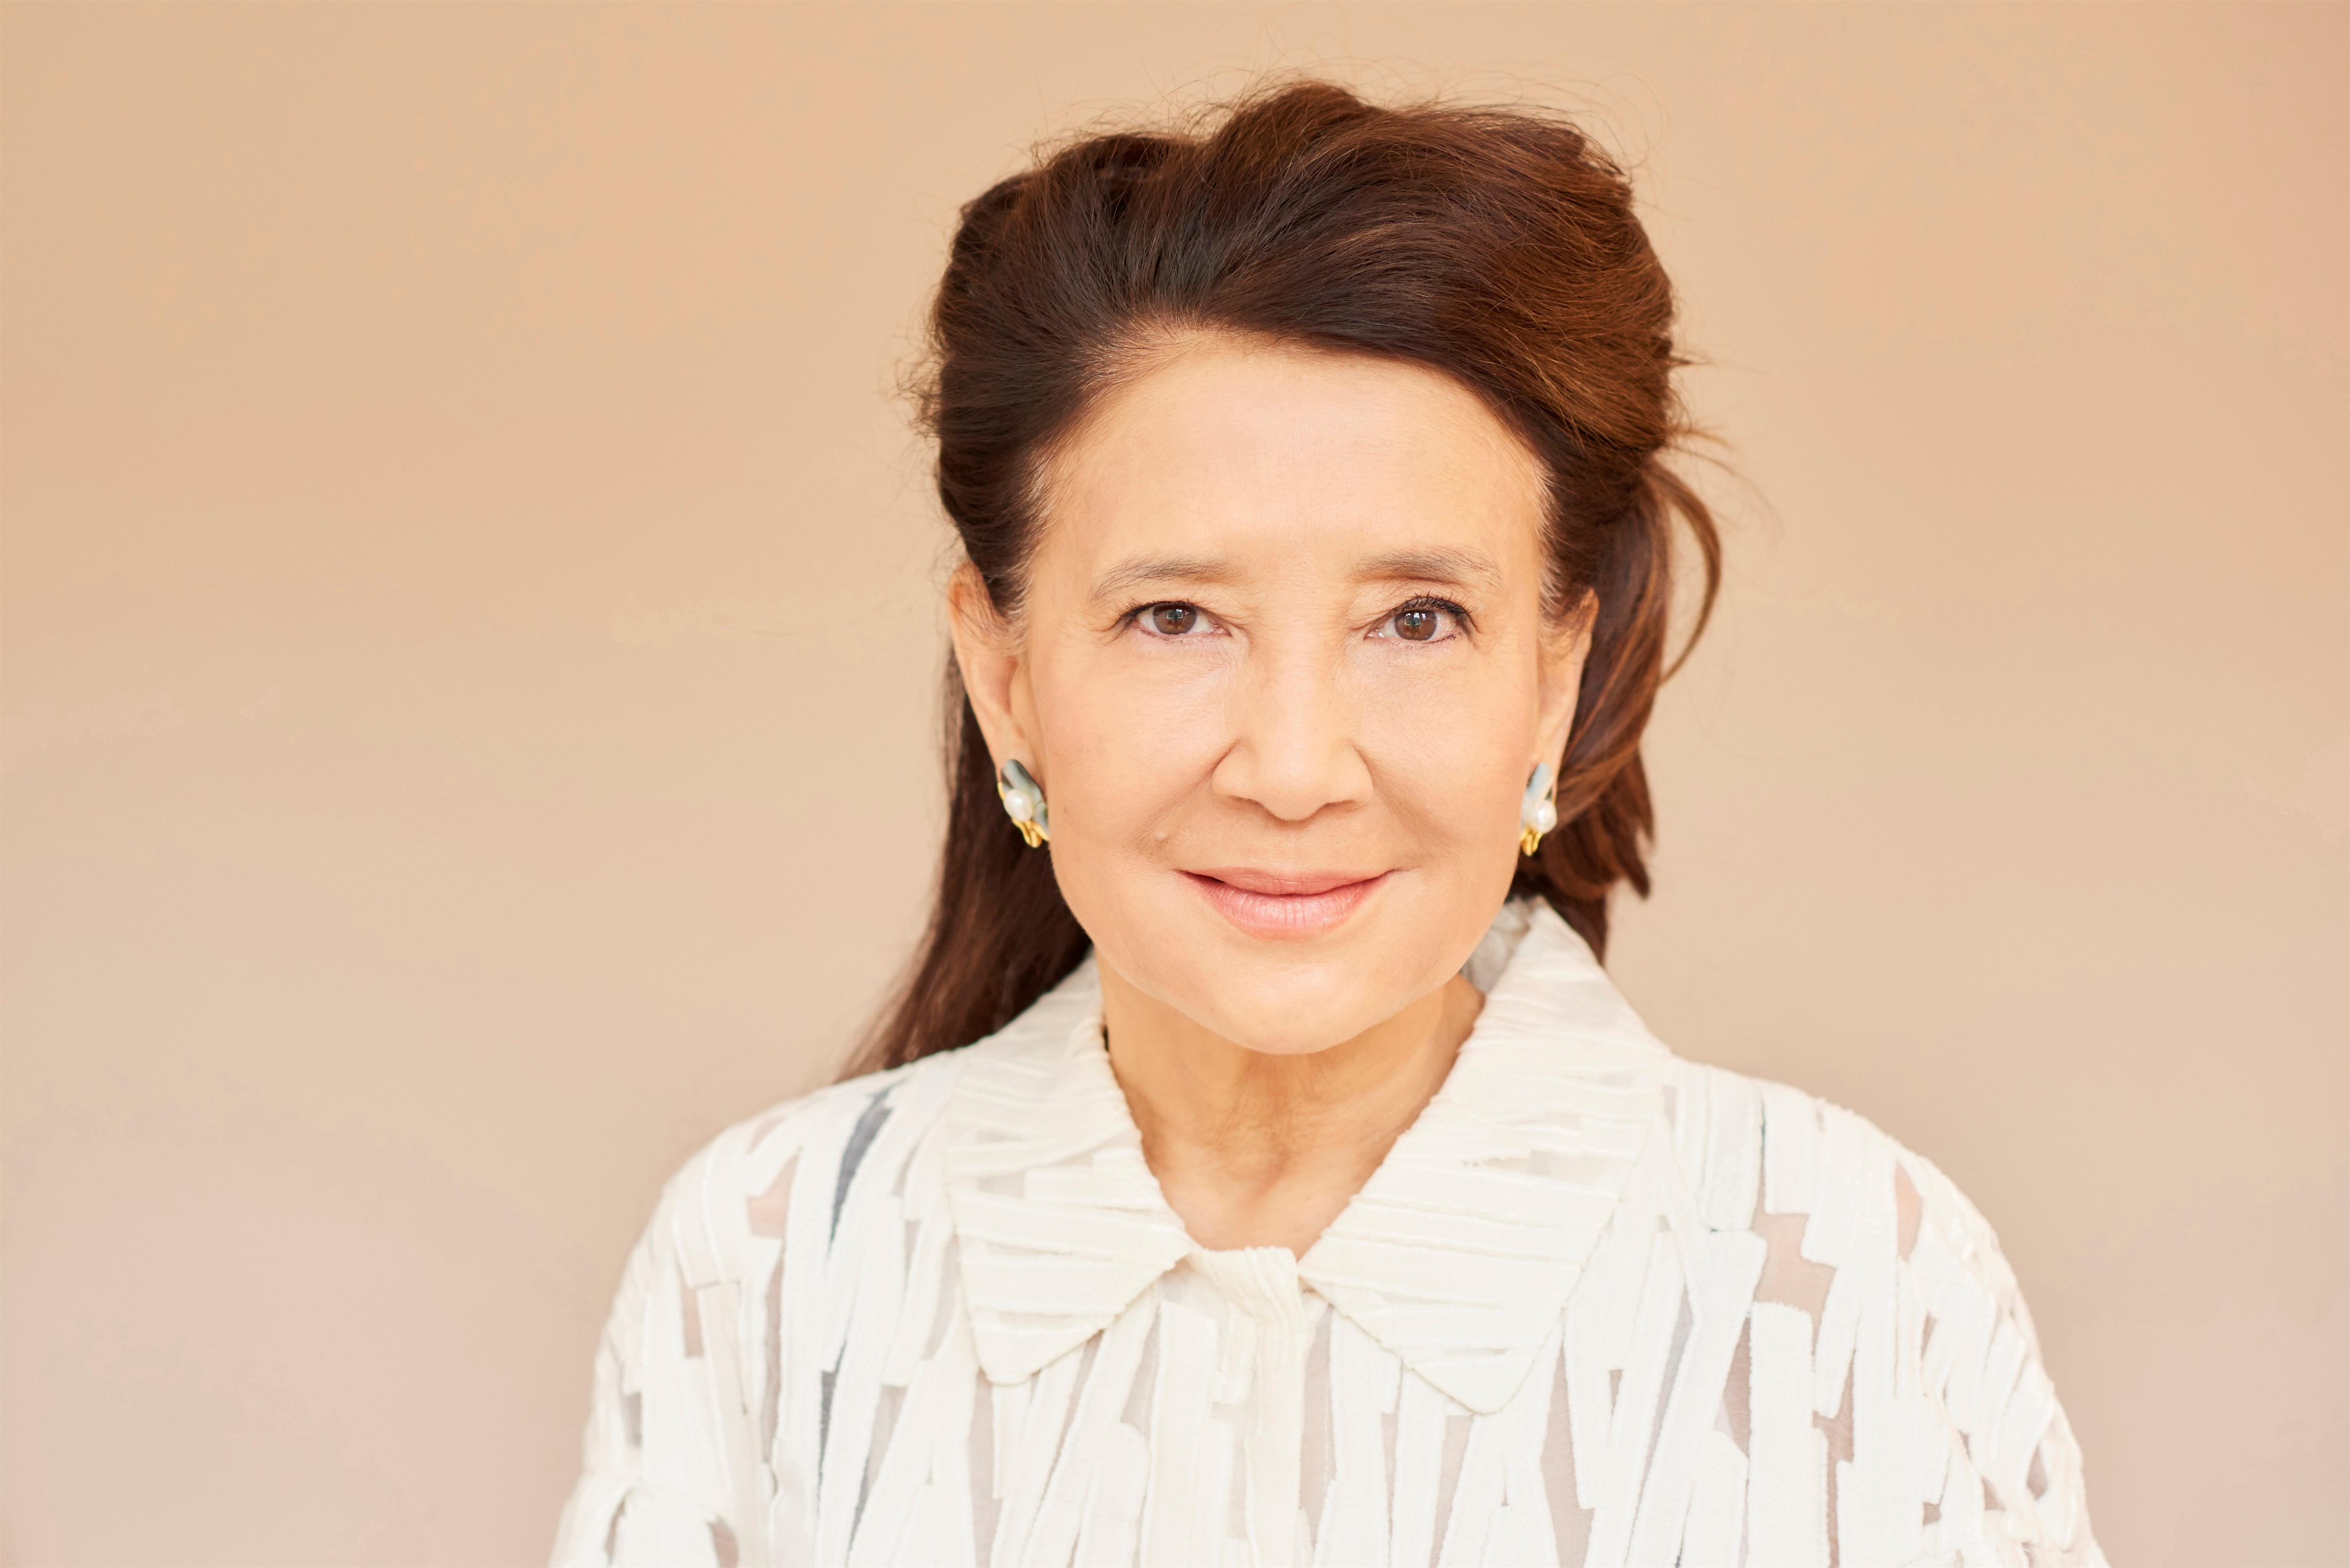 the most historical events in china as described in the book wild swans The wild swans author on why she loves london, being banned in china and the astonishing life of an empress sat 28 sep 2013 1905 edt first published on sat 28 sep 2013 1905 edt share on facebook.